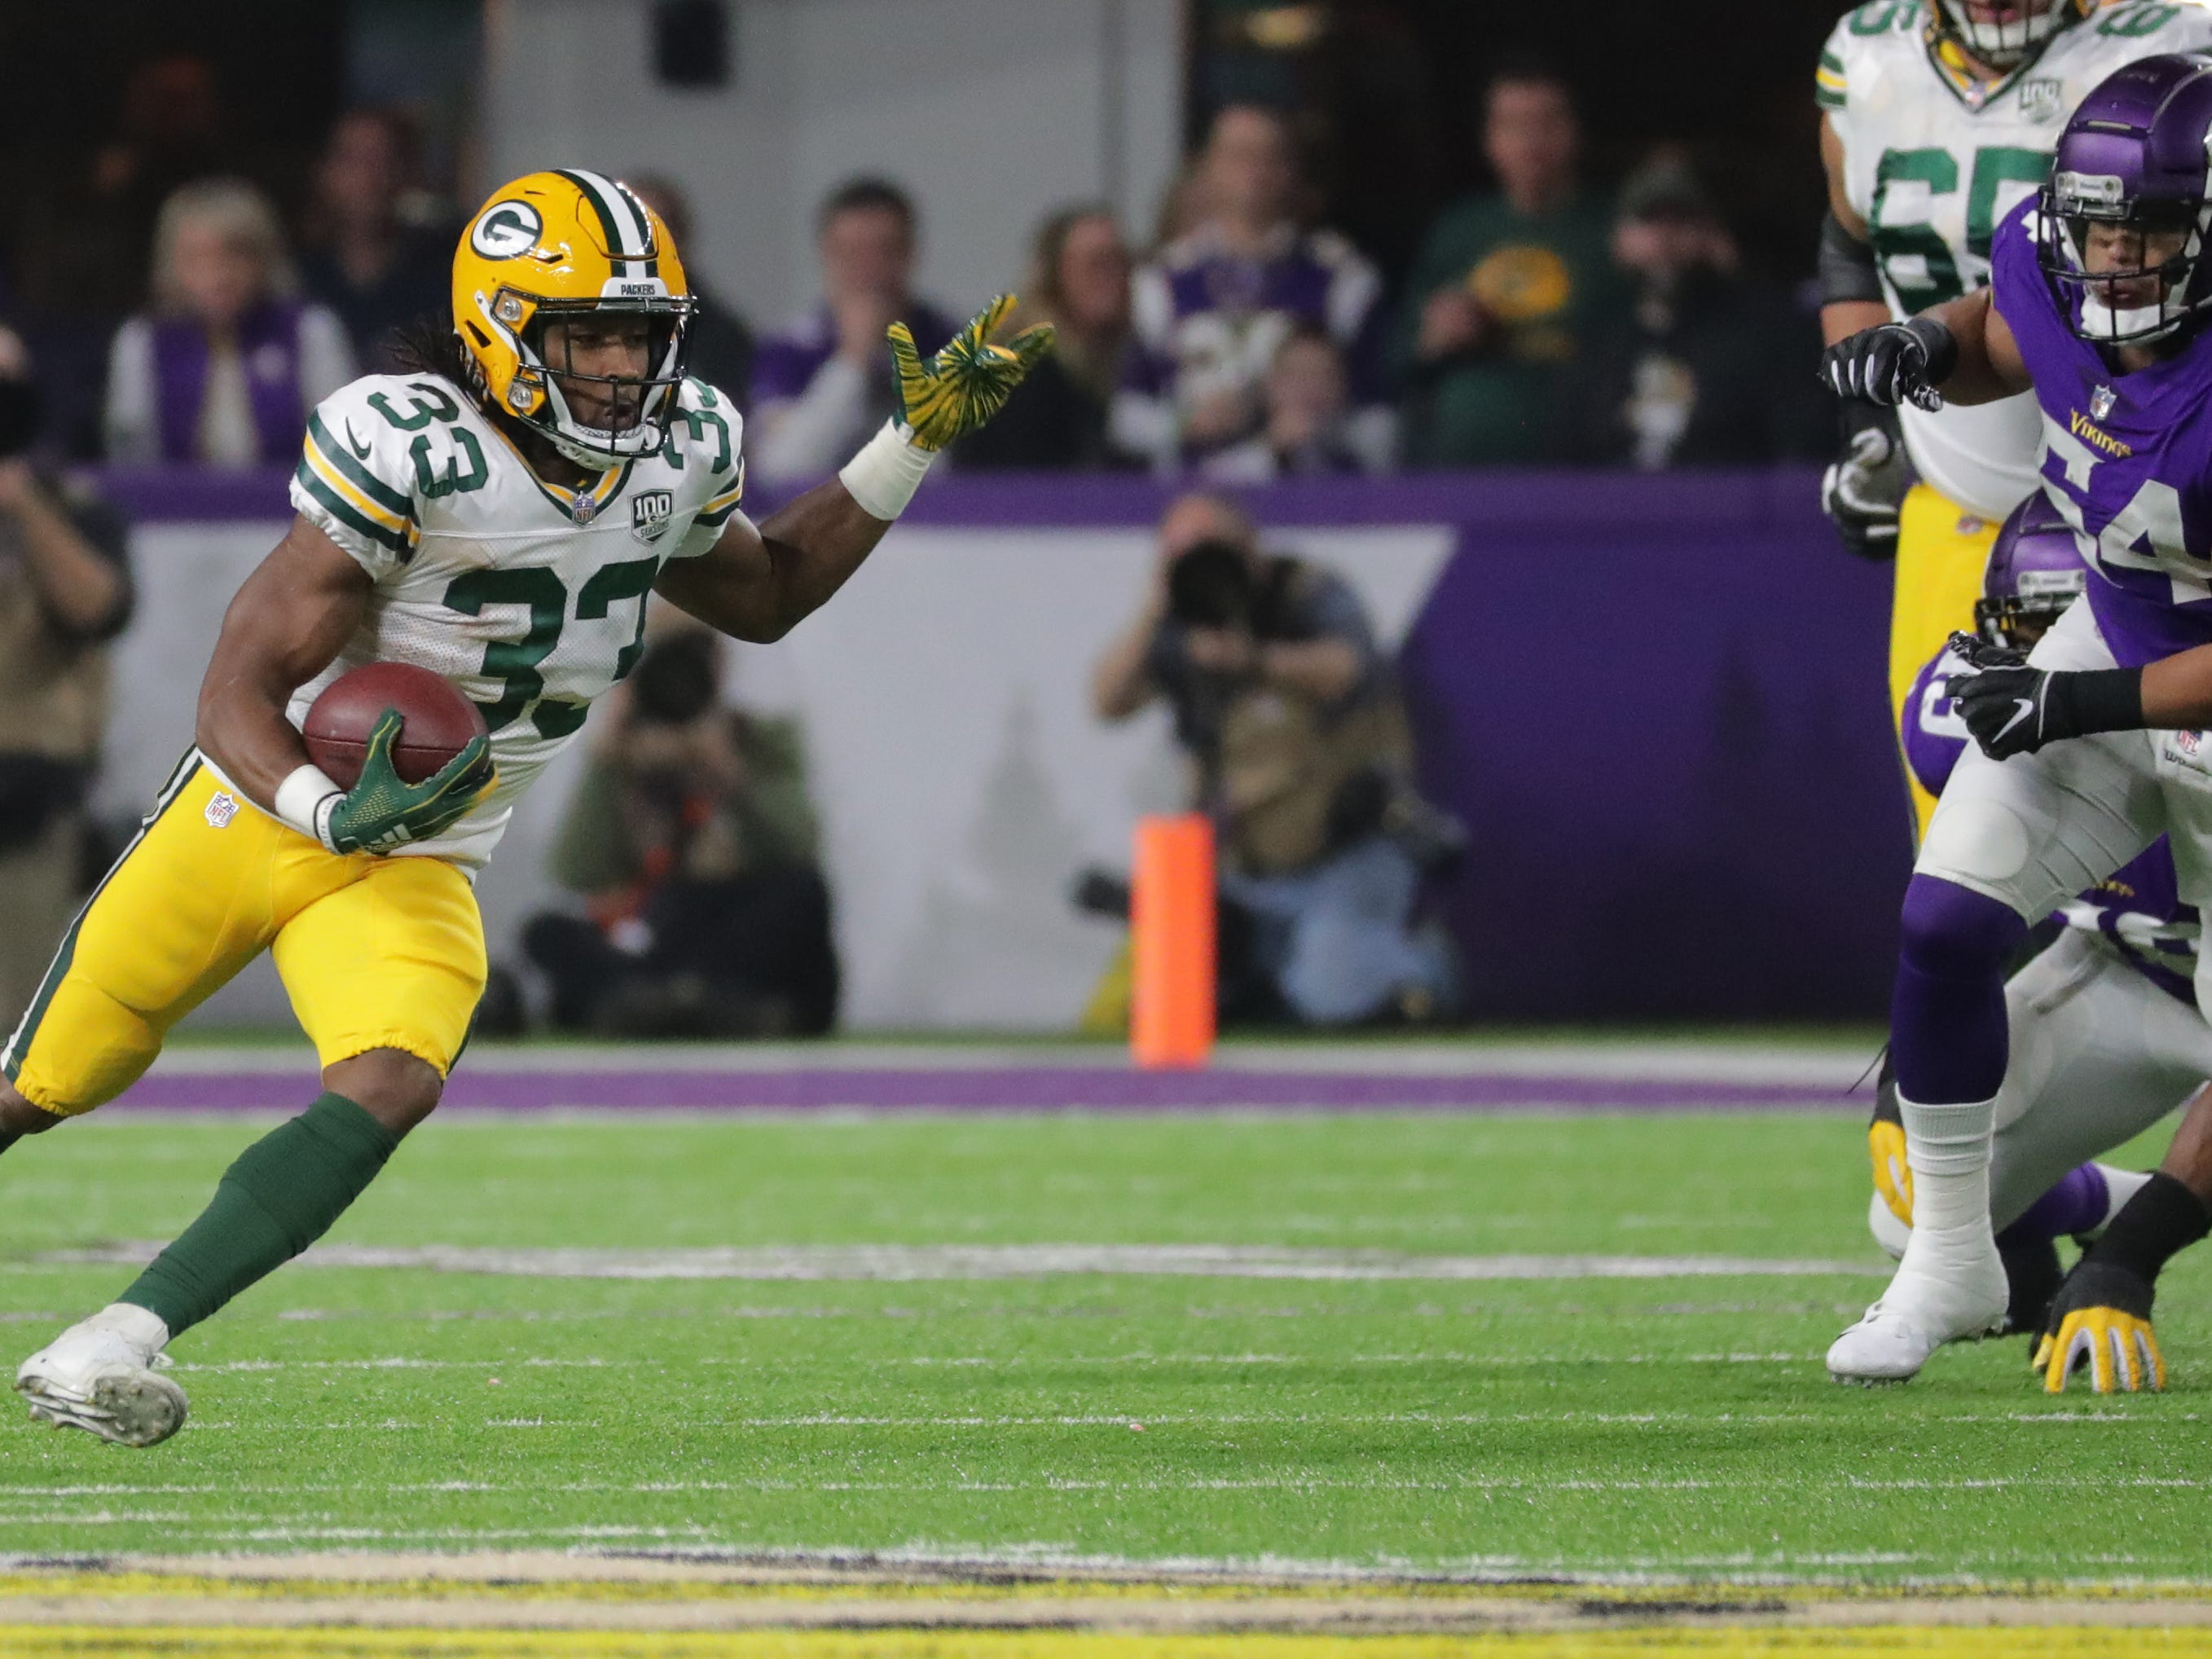 Green Bay Packers running back Aaron Jones (33) find plenty of running room while picking up a first down during the second quarter of their game against the Minnesota Vikings Sunday, November 25, 2018 at U.S. Bank Stadium in Minneapolis, Minn.